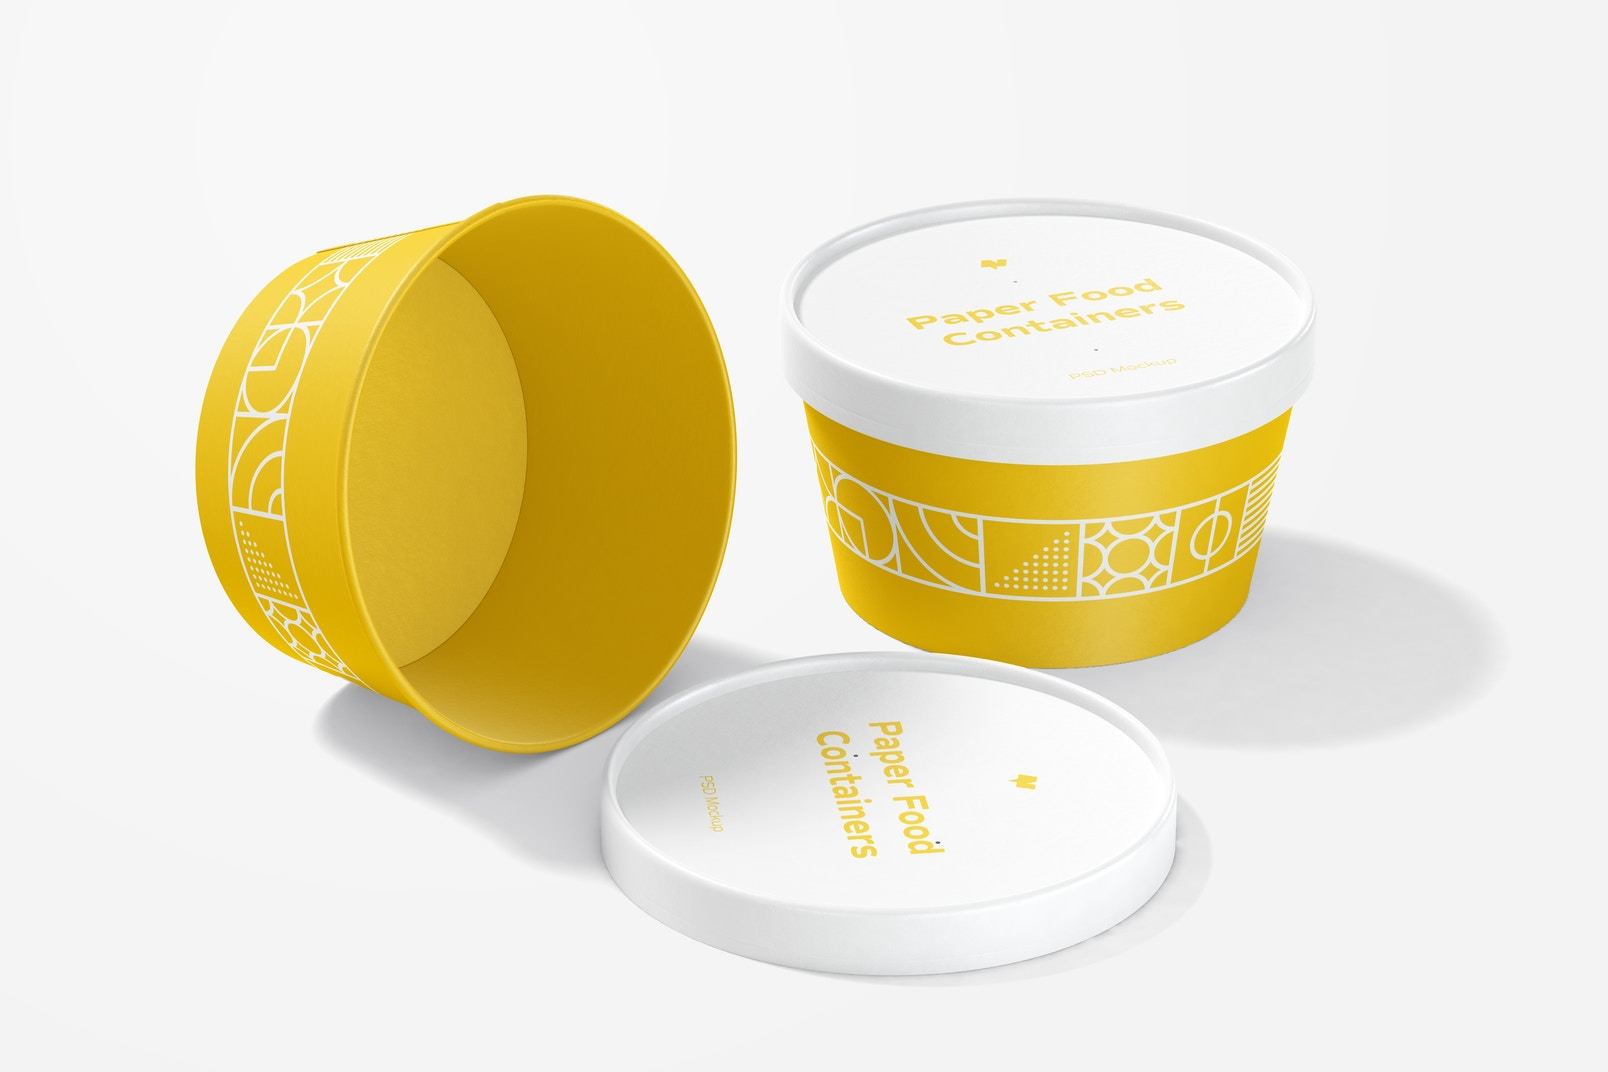 Round Paper Food Containers Mockup